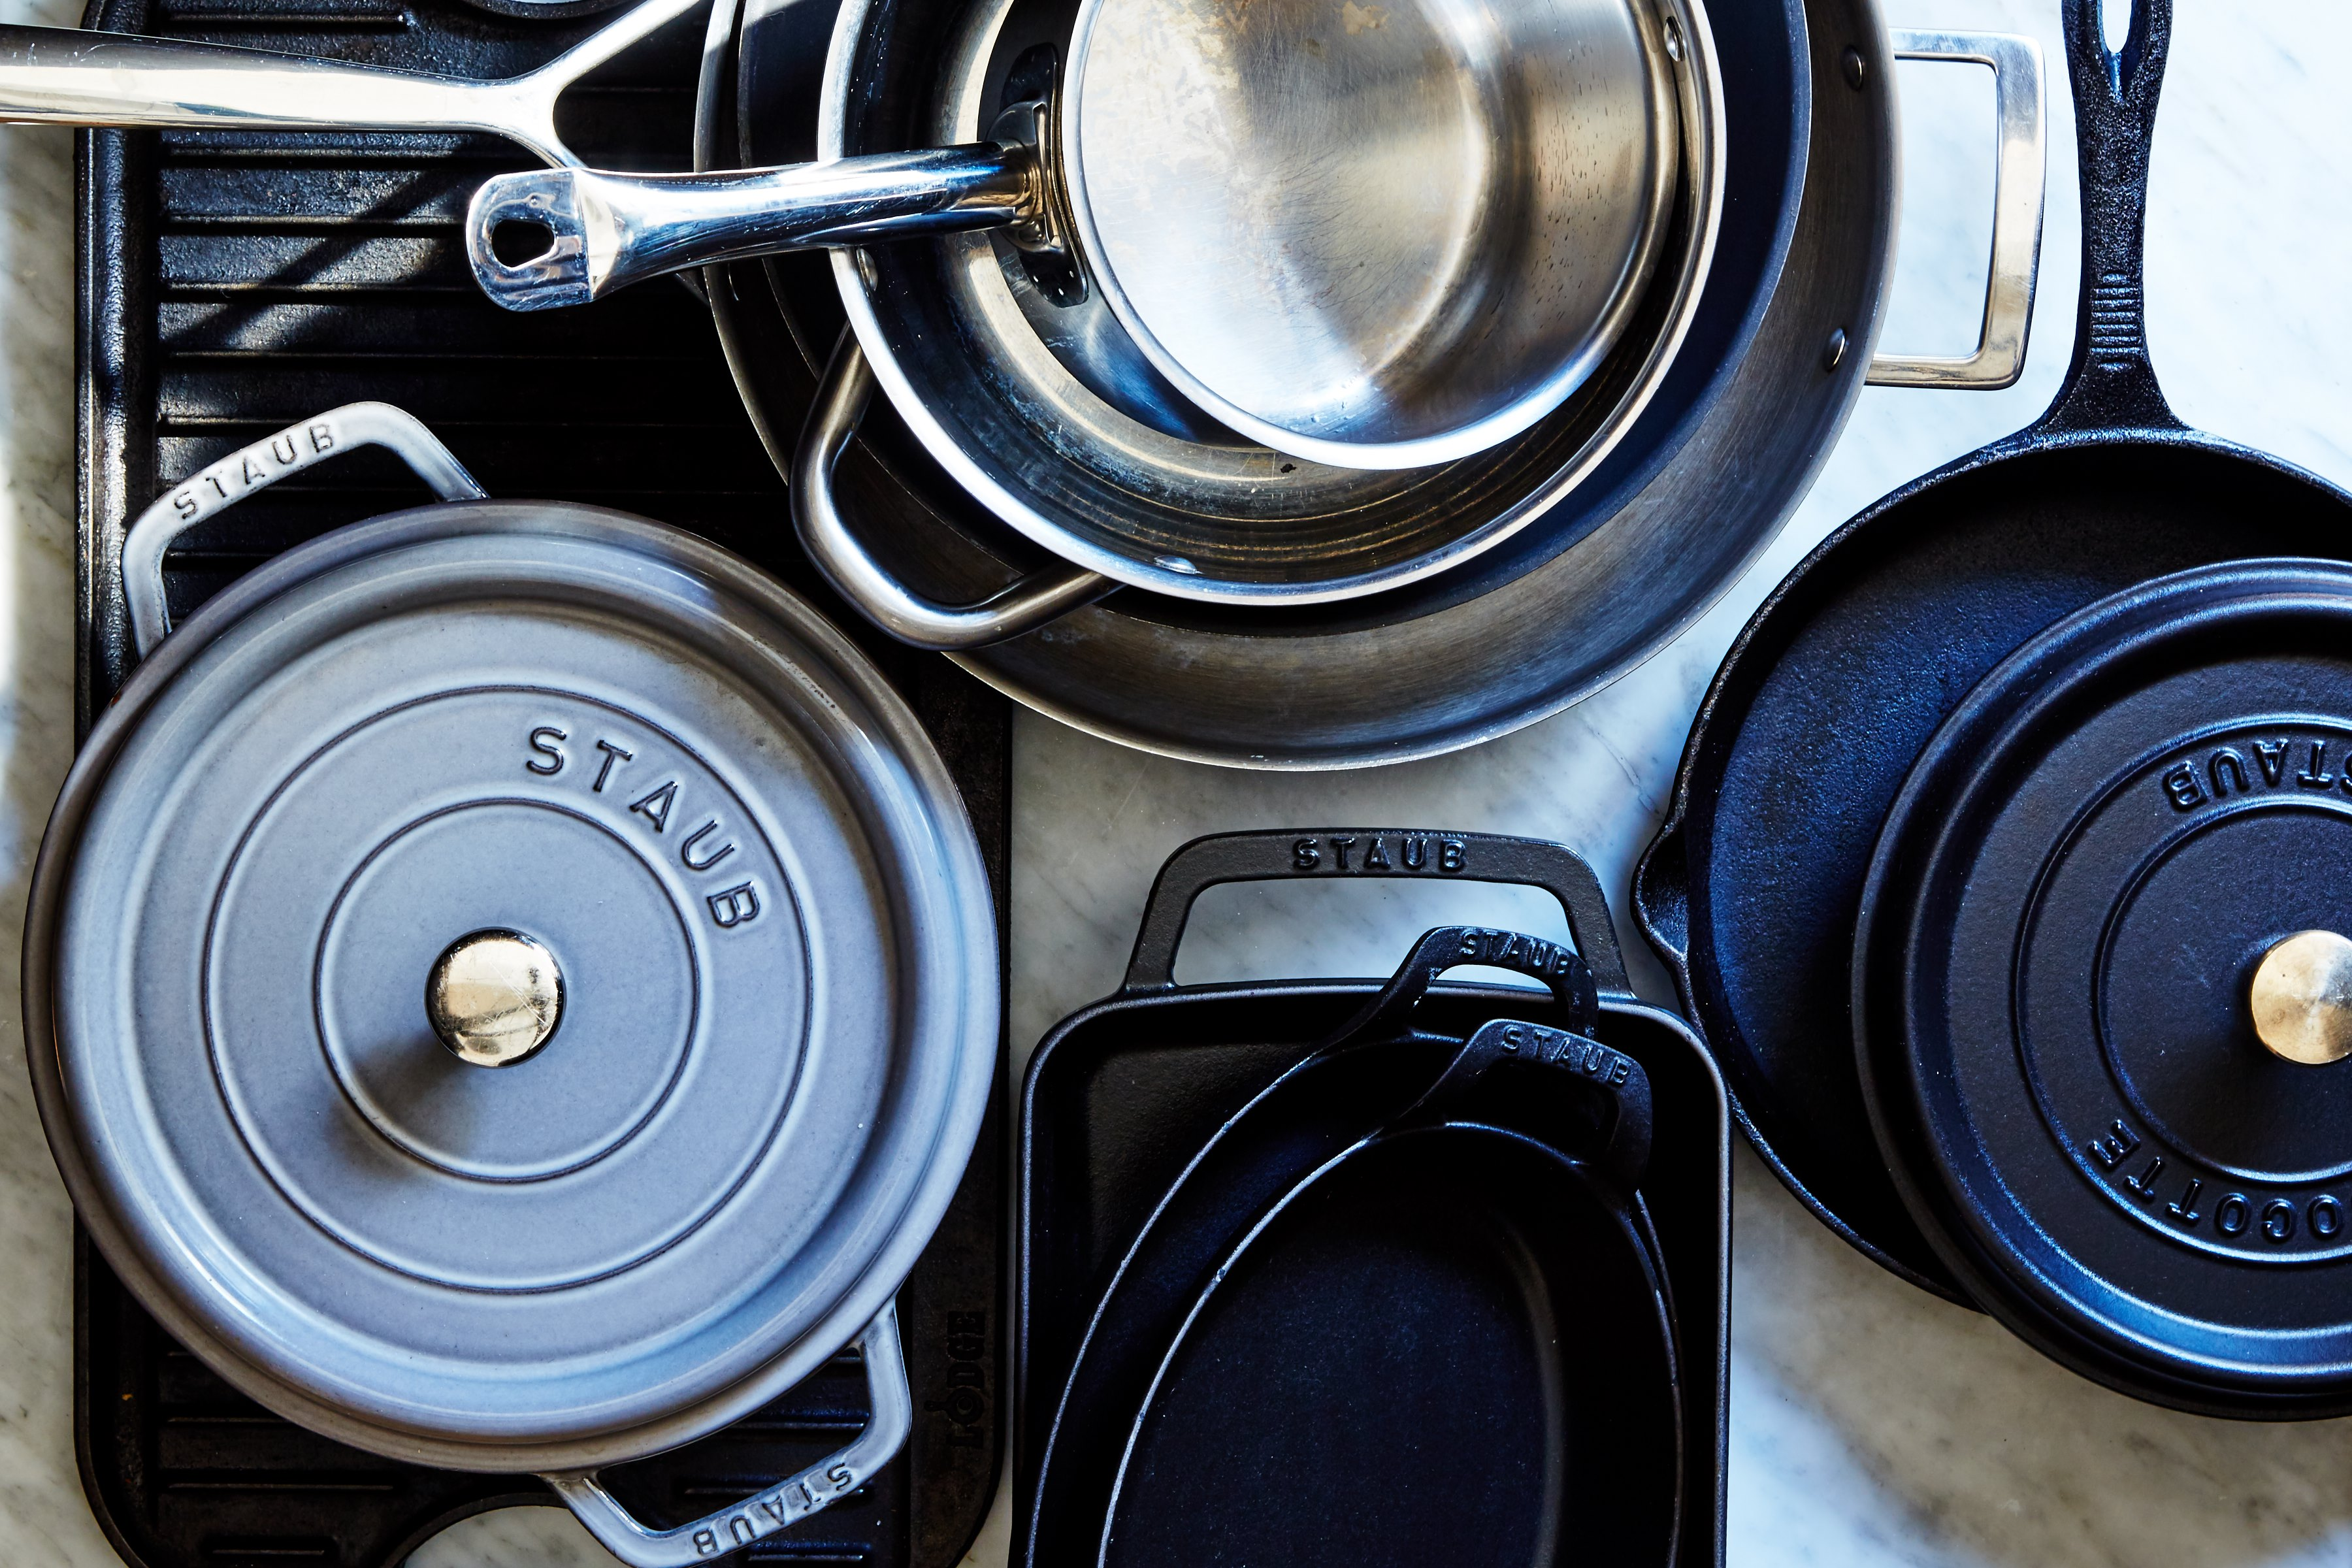 overhead shot of many stainless steel and cast iron pots, pans, and dutch ovens on a stove